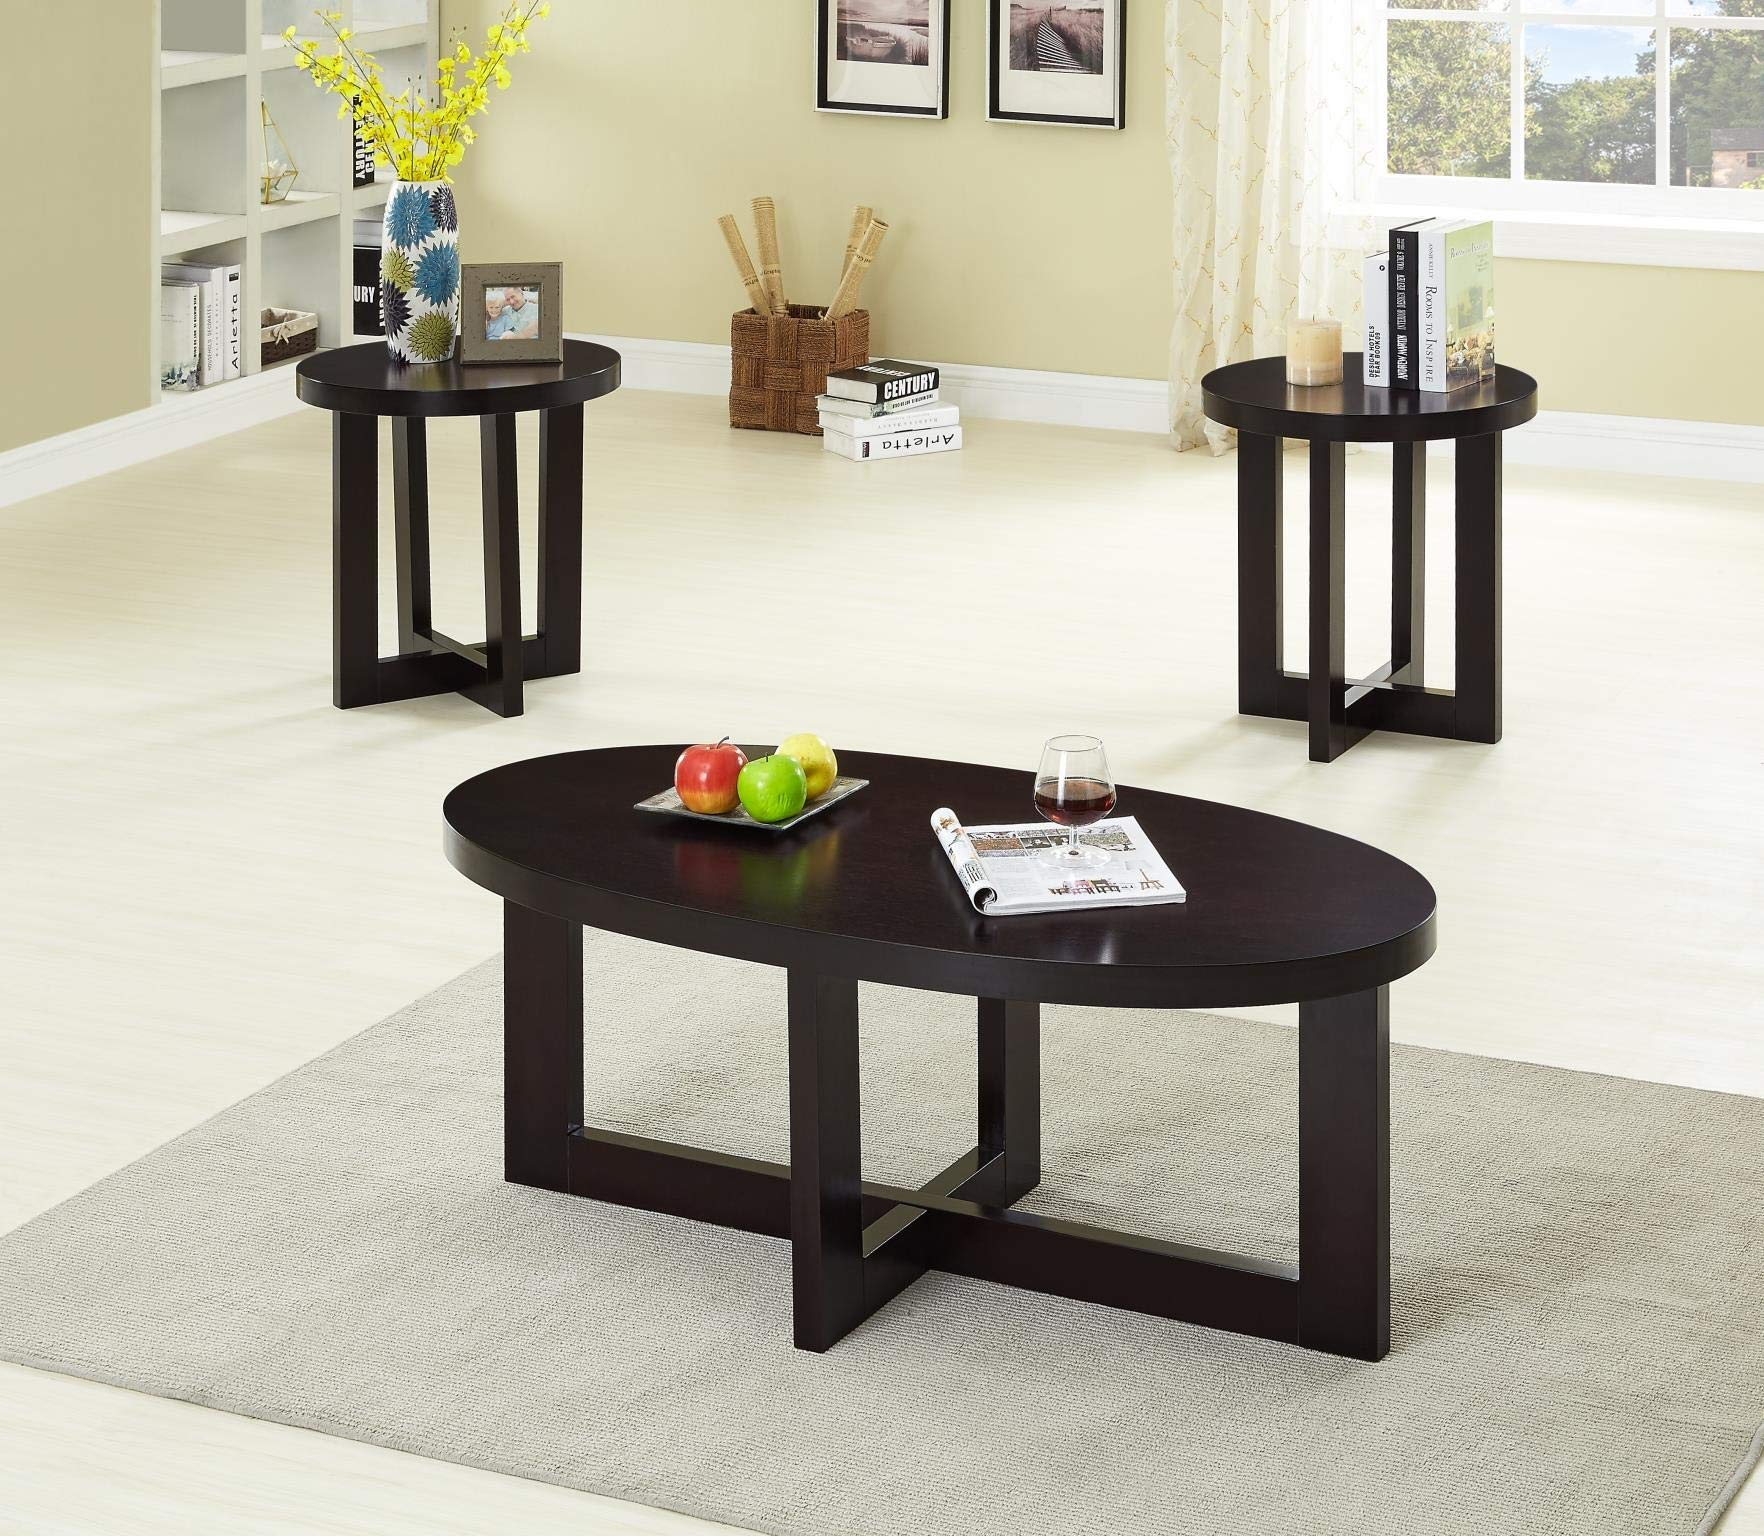 GTU Furniture Ocassional, Contemporary Modern, Transitional Oval Accent Table Set, 1 Coffee Table and 2 End Tables with a Dark Espresso Finish, Mesitas para Sala